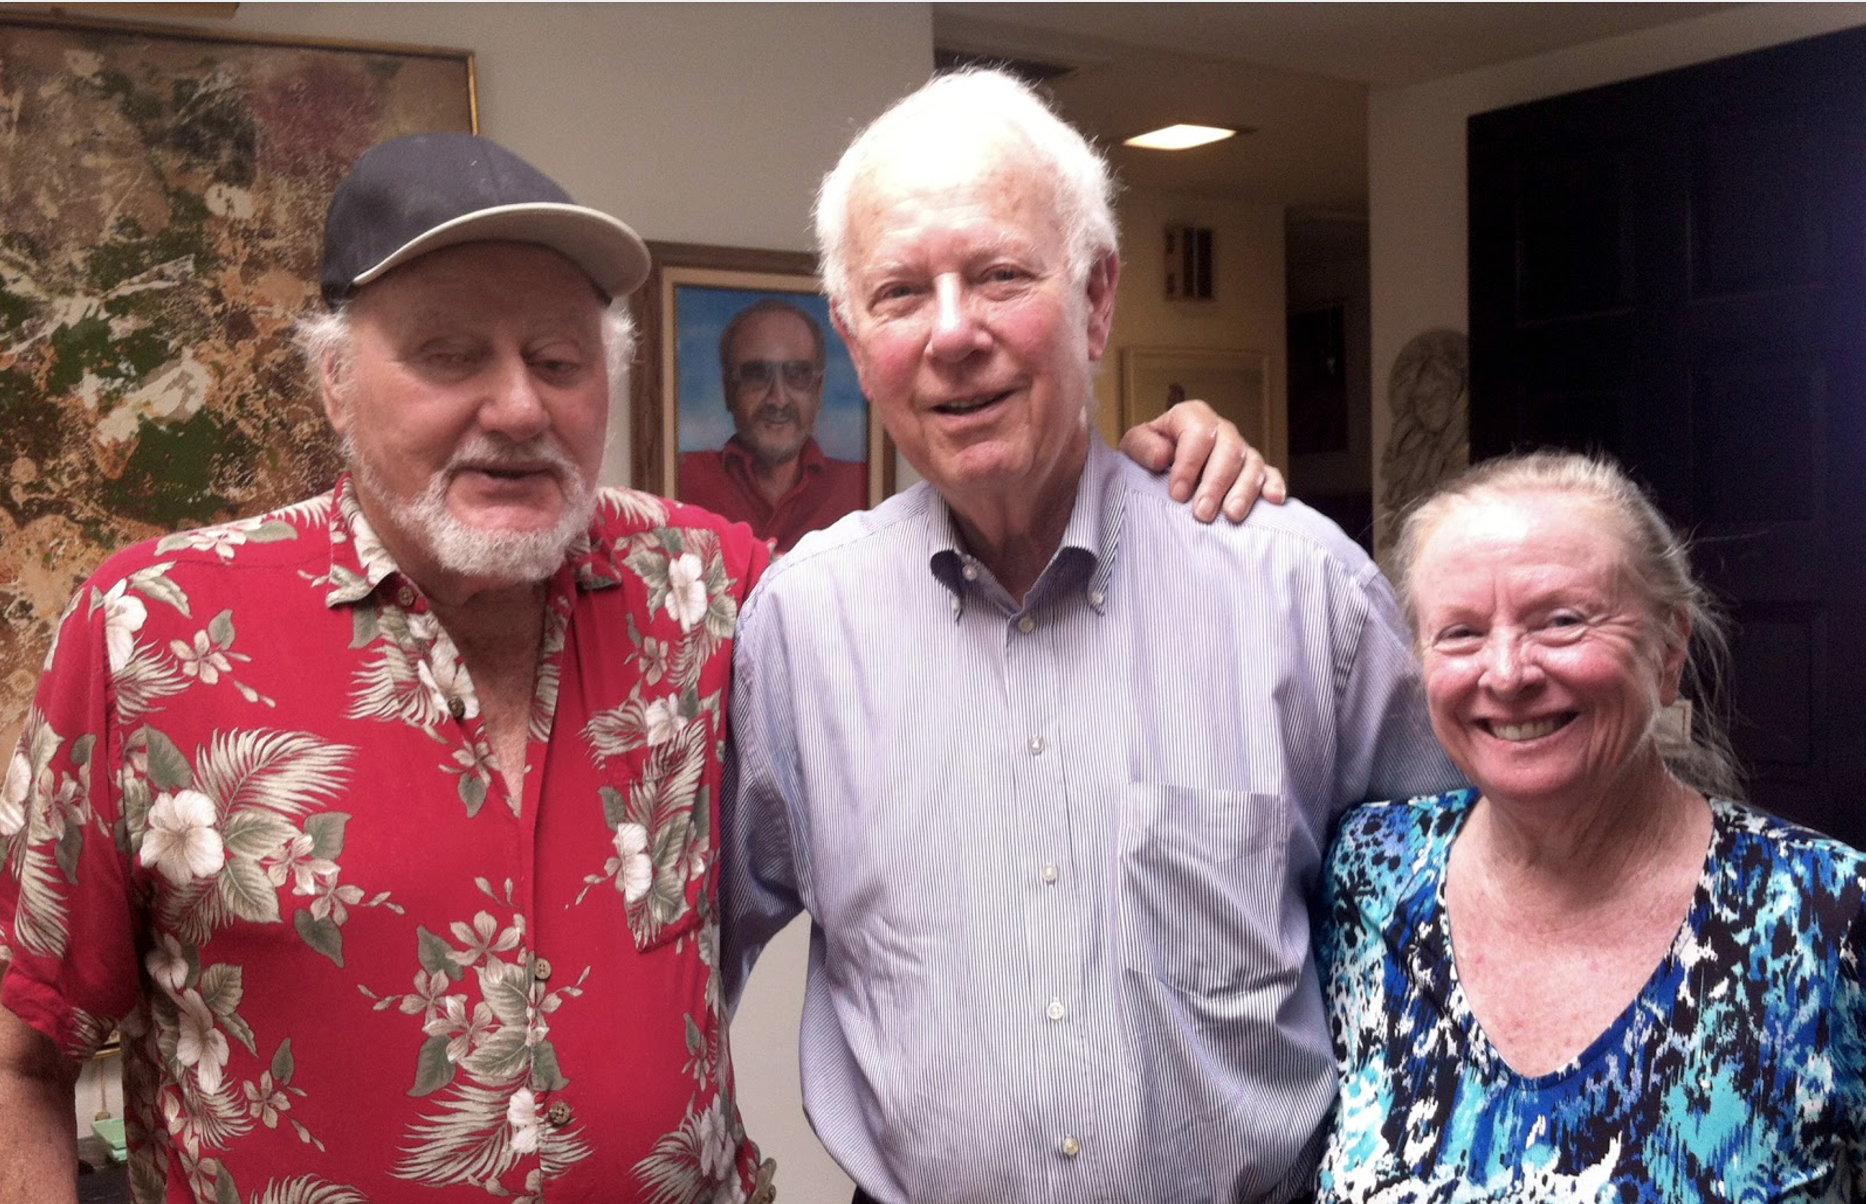 From left to right: Emanuel Wolf, Richard Buxbaum and Patricia Recendez at Emanuel and Patricia's home in Carlsbad, California.